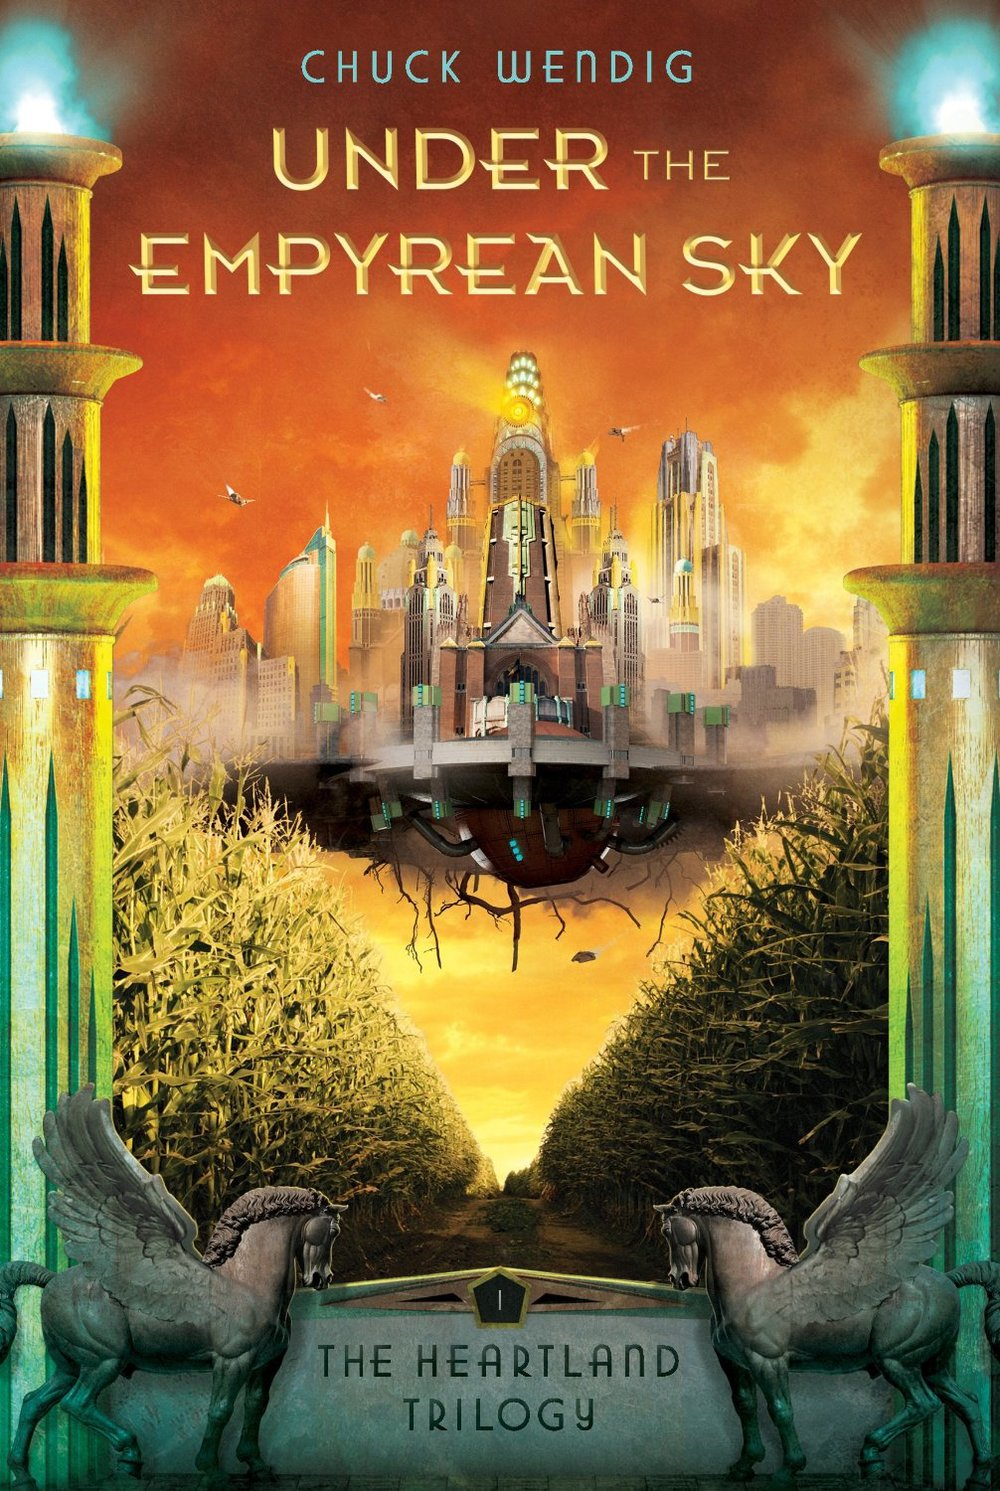 Under the Empyrean Sky by Chuck Wendig (Audio) Review | Amazon | Goodreads